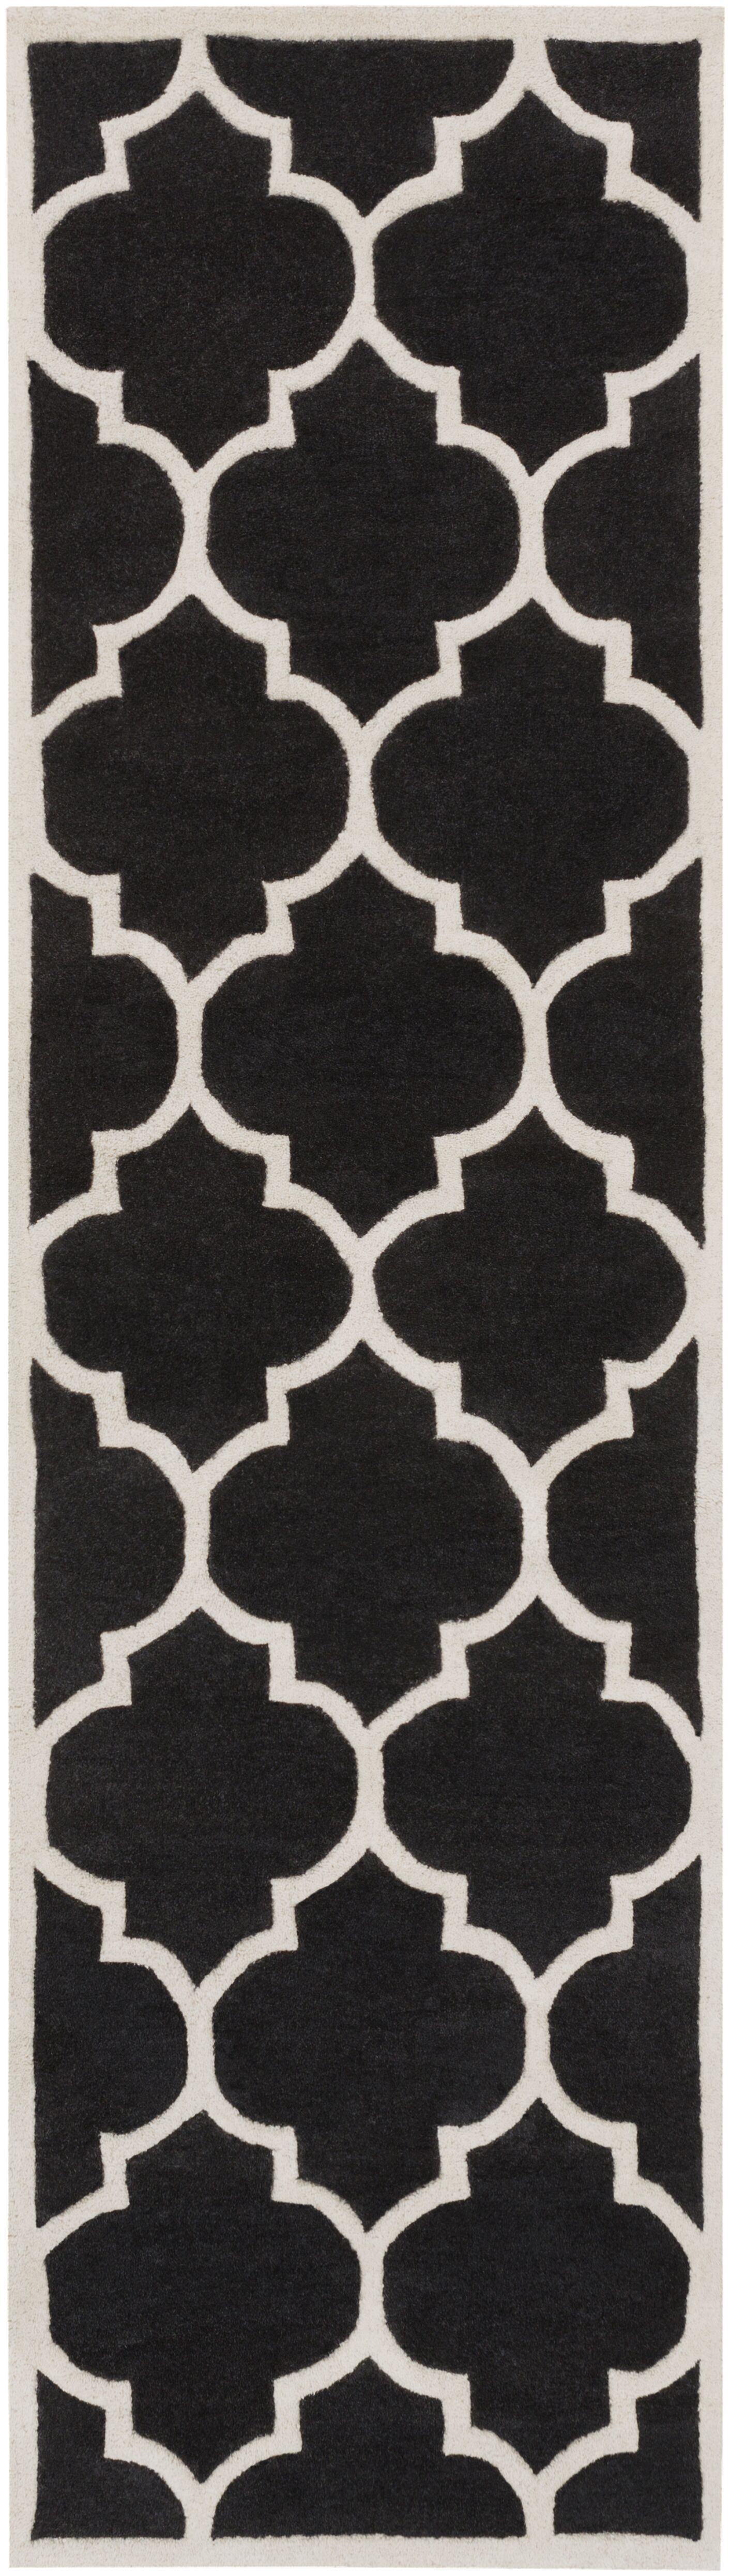 Ayler Black Geometric Area Rug Rug Size: Runner 2'3